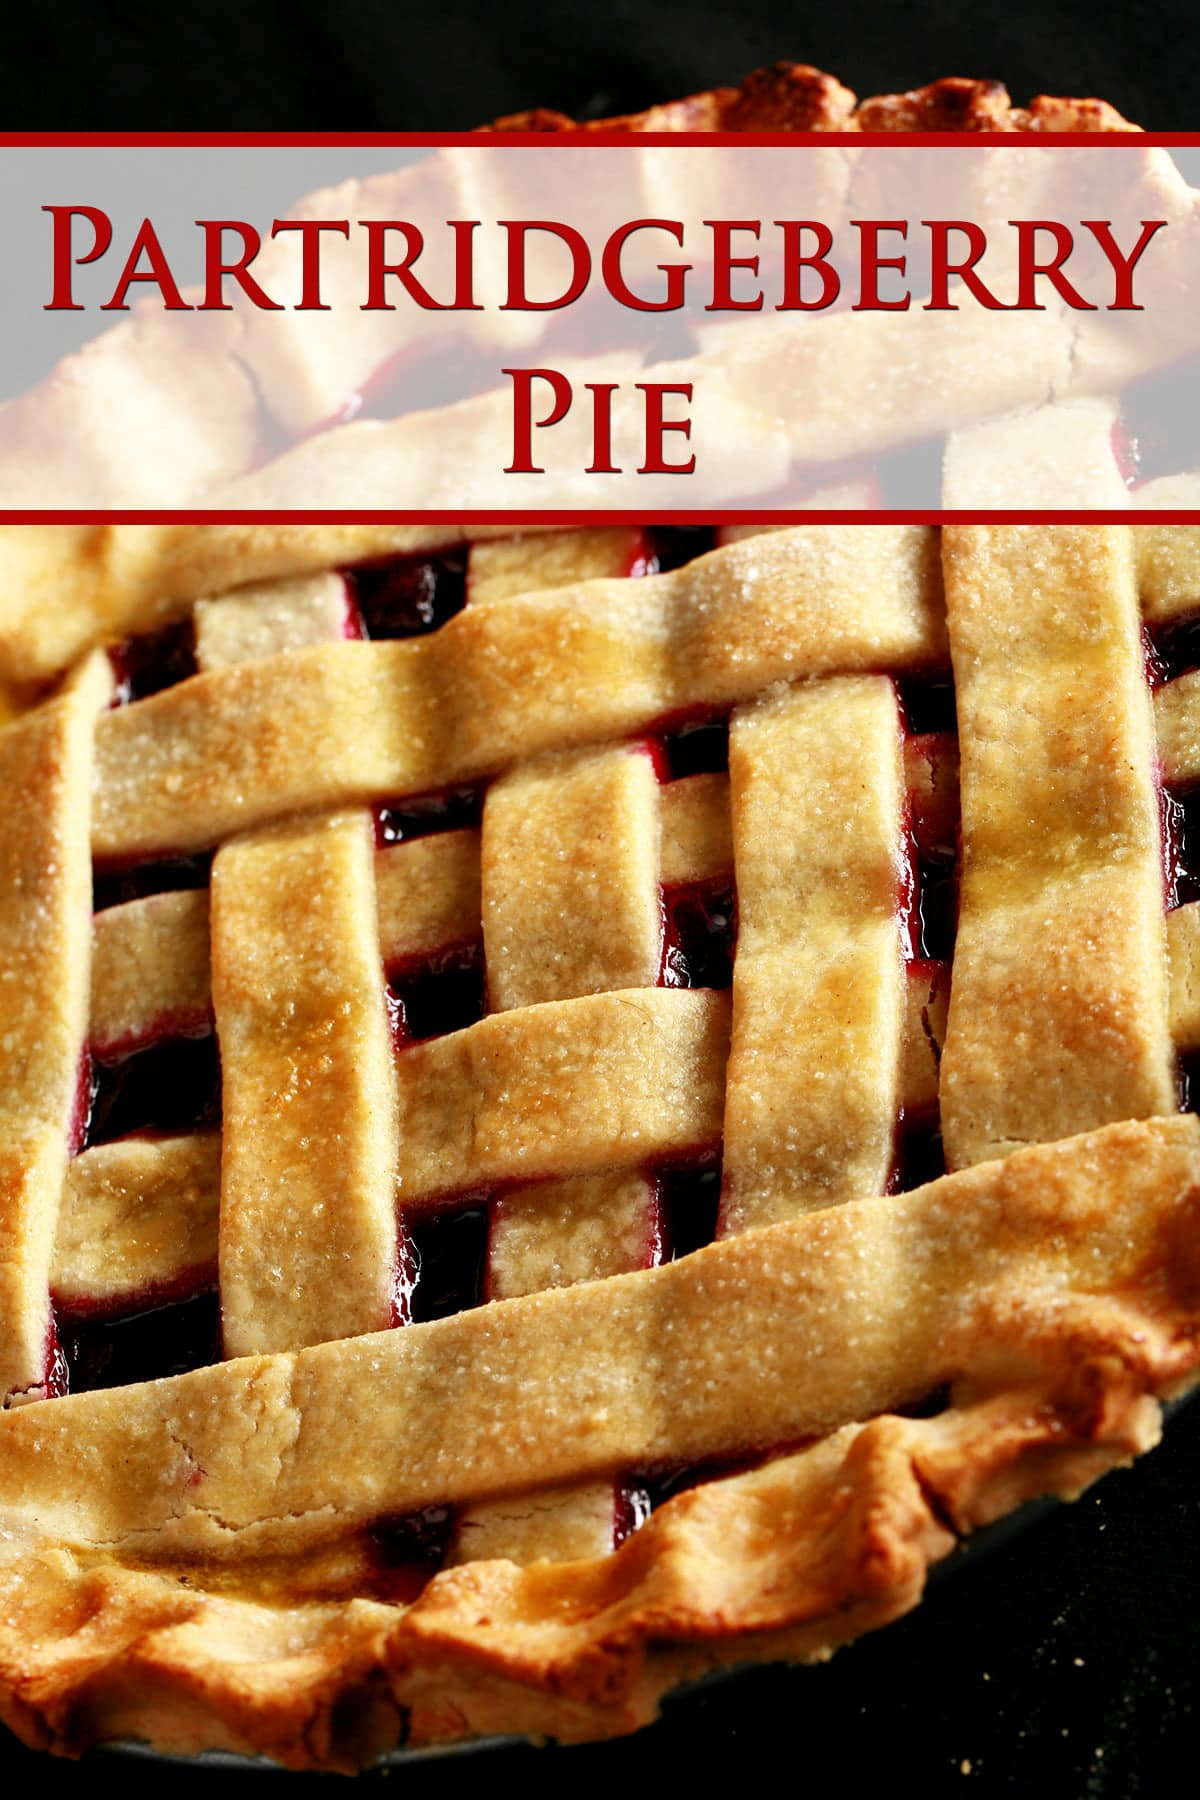 A close up view of a partridgeberry pie with a lattice crust.